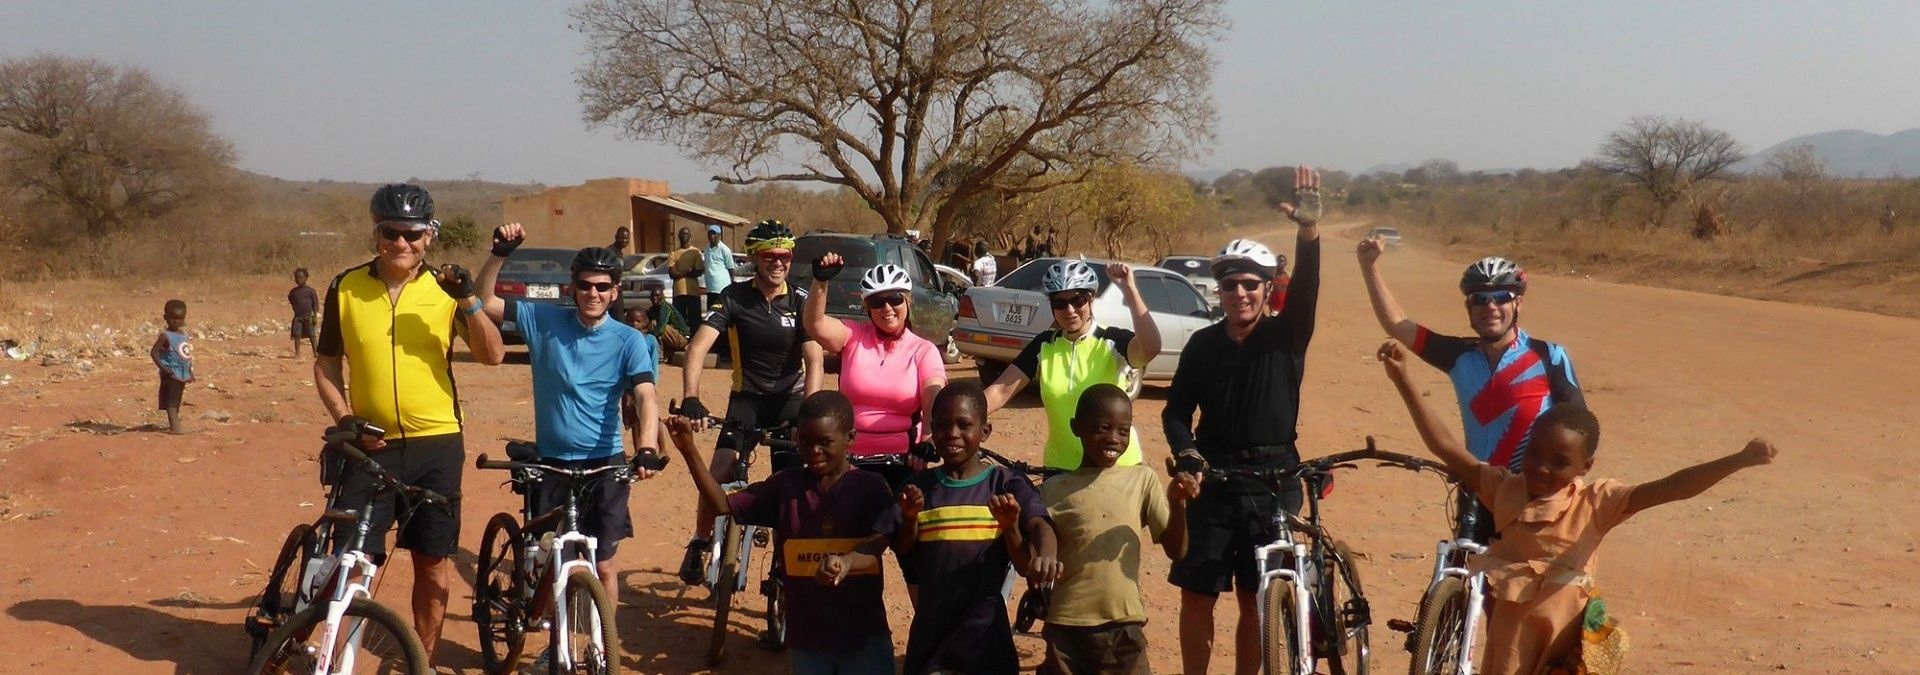 Challengers with local children in Zambia